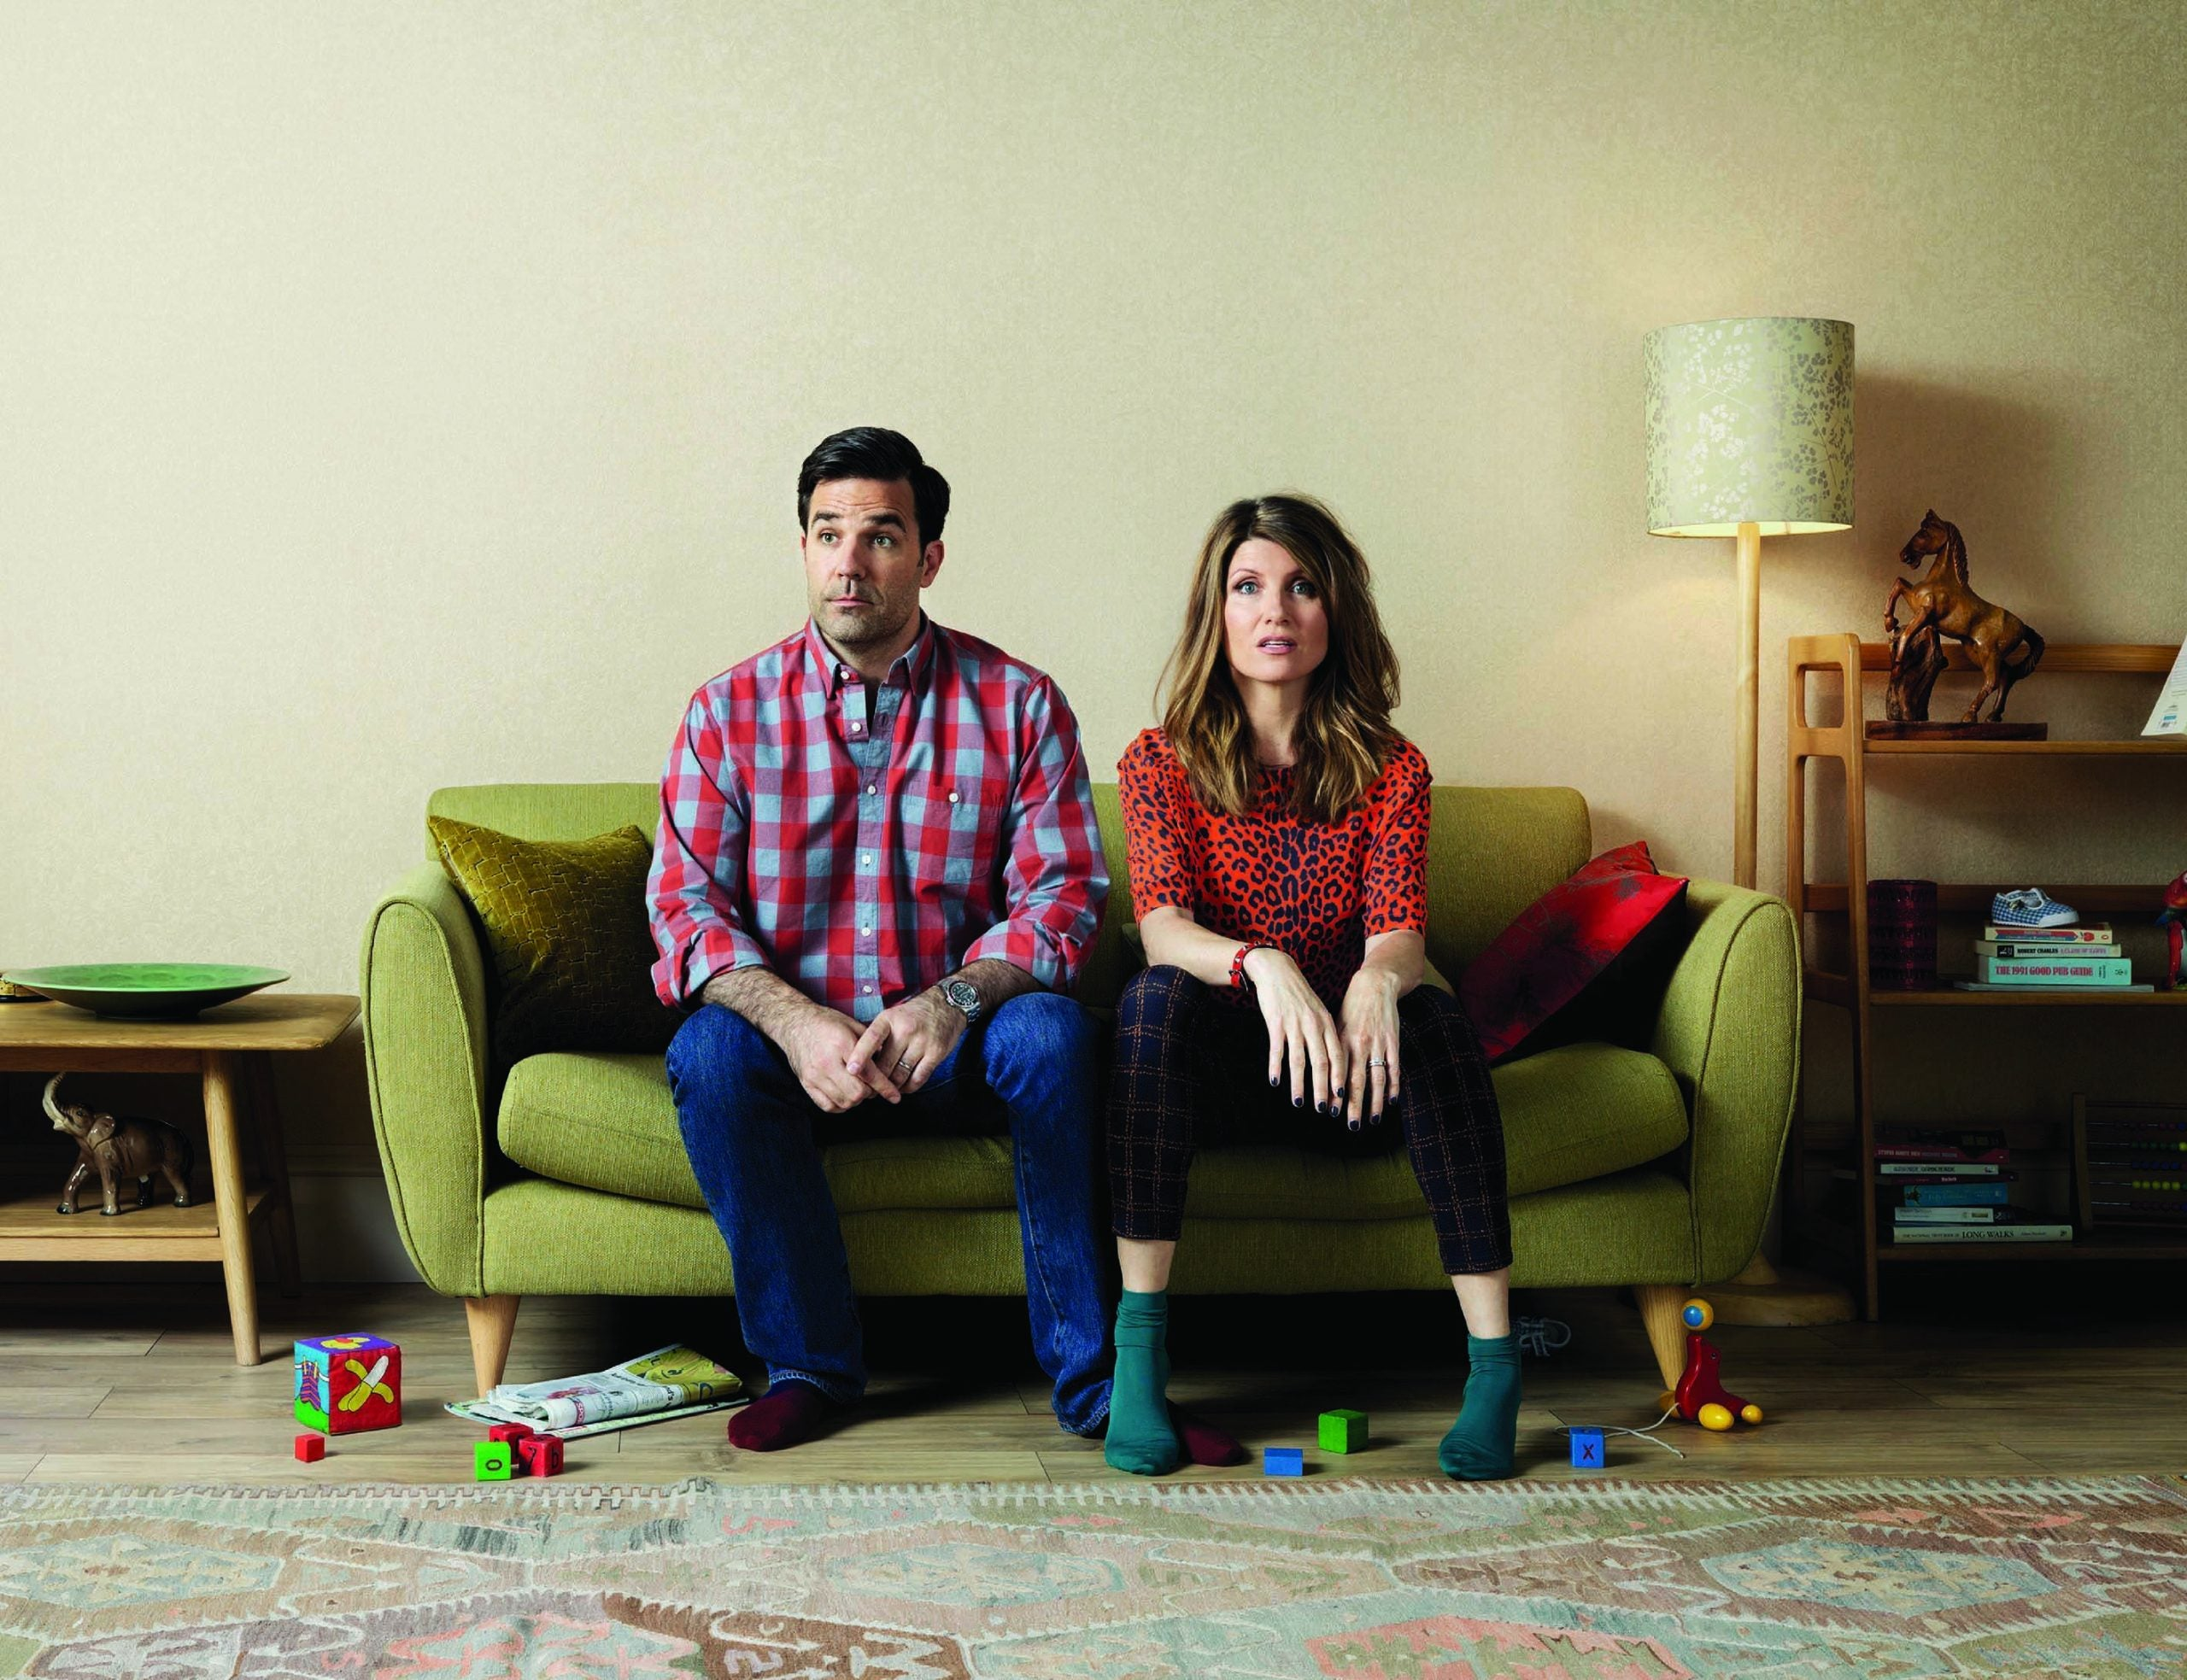 Smug marrieds: has Sharon Horgan's and Rob Delaney's Catastrophe lost its edge?